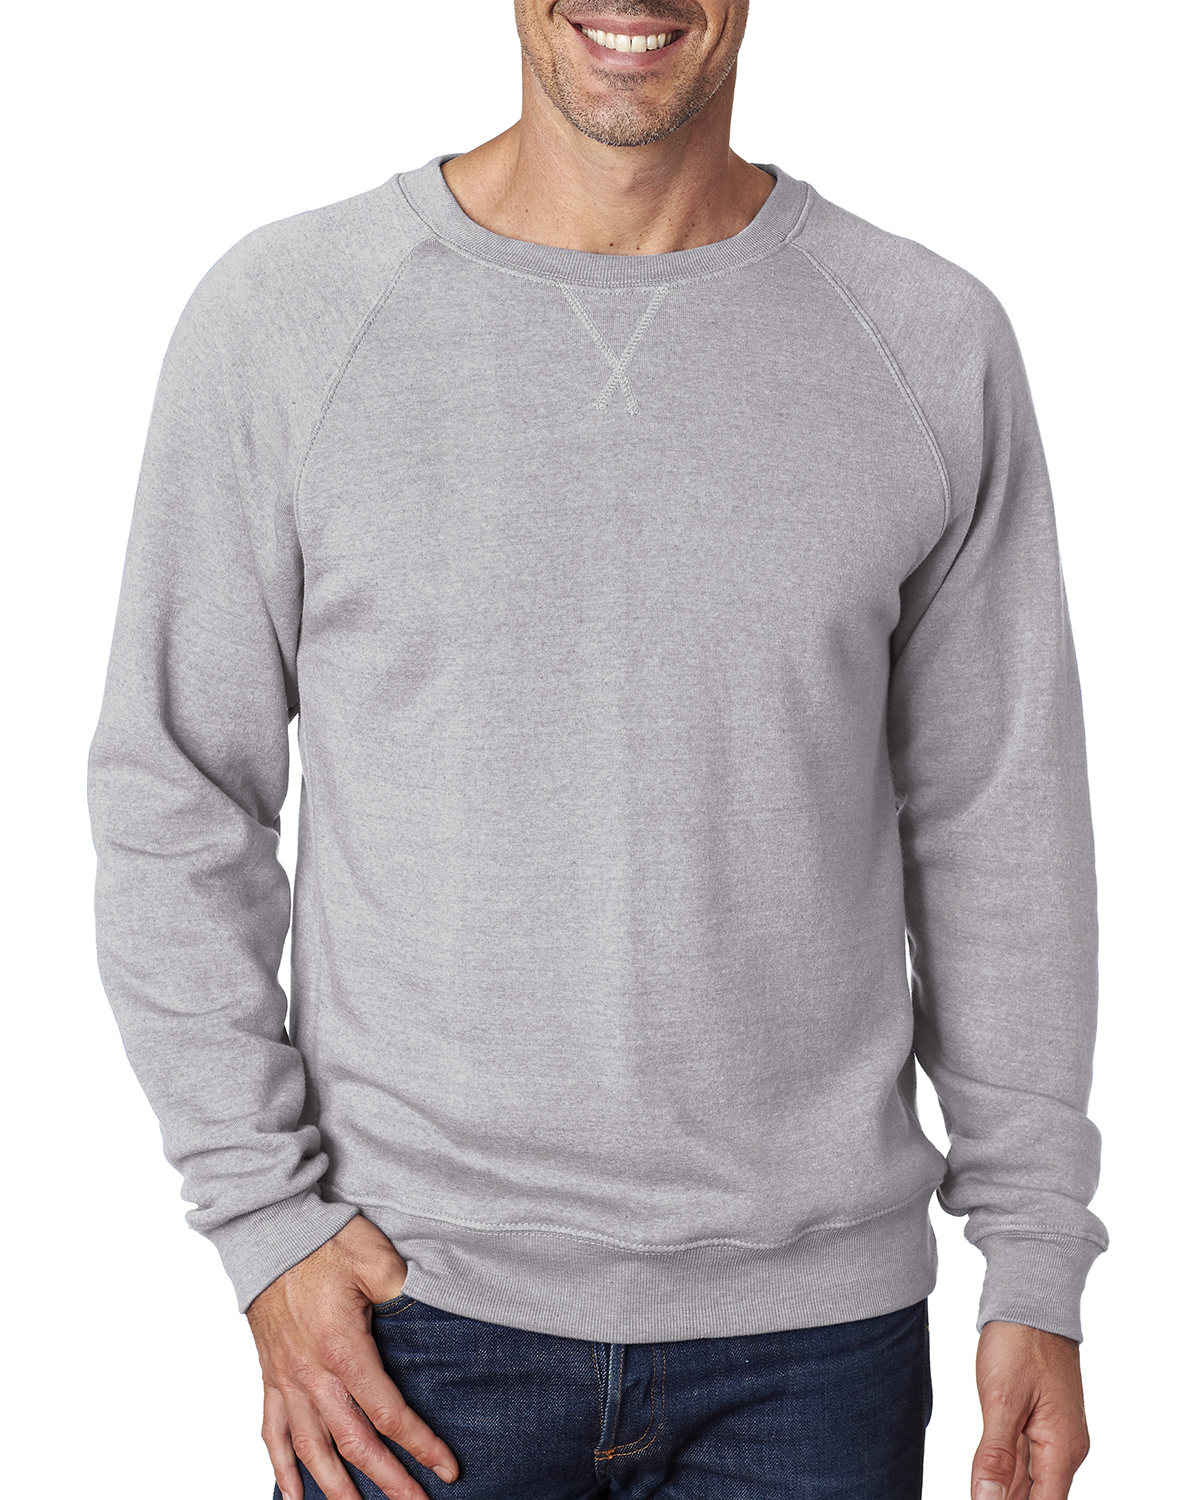 J.America JA8875 - Adult Tri-Blend Fleece Crew